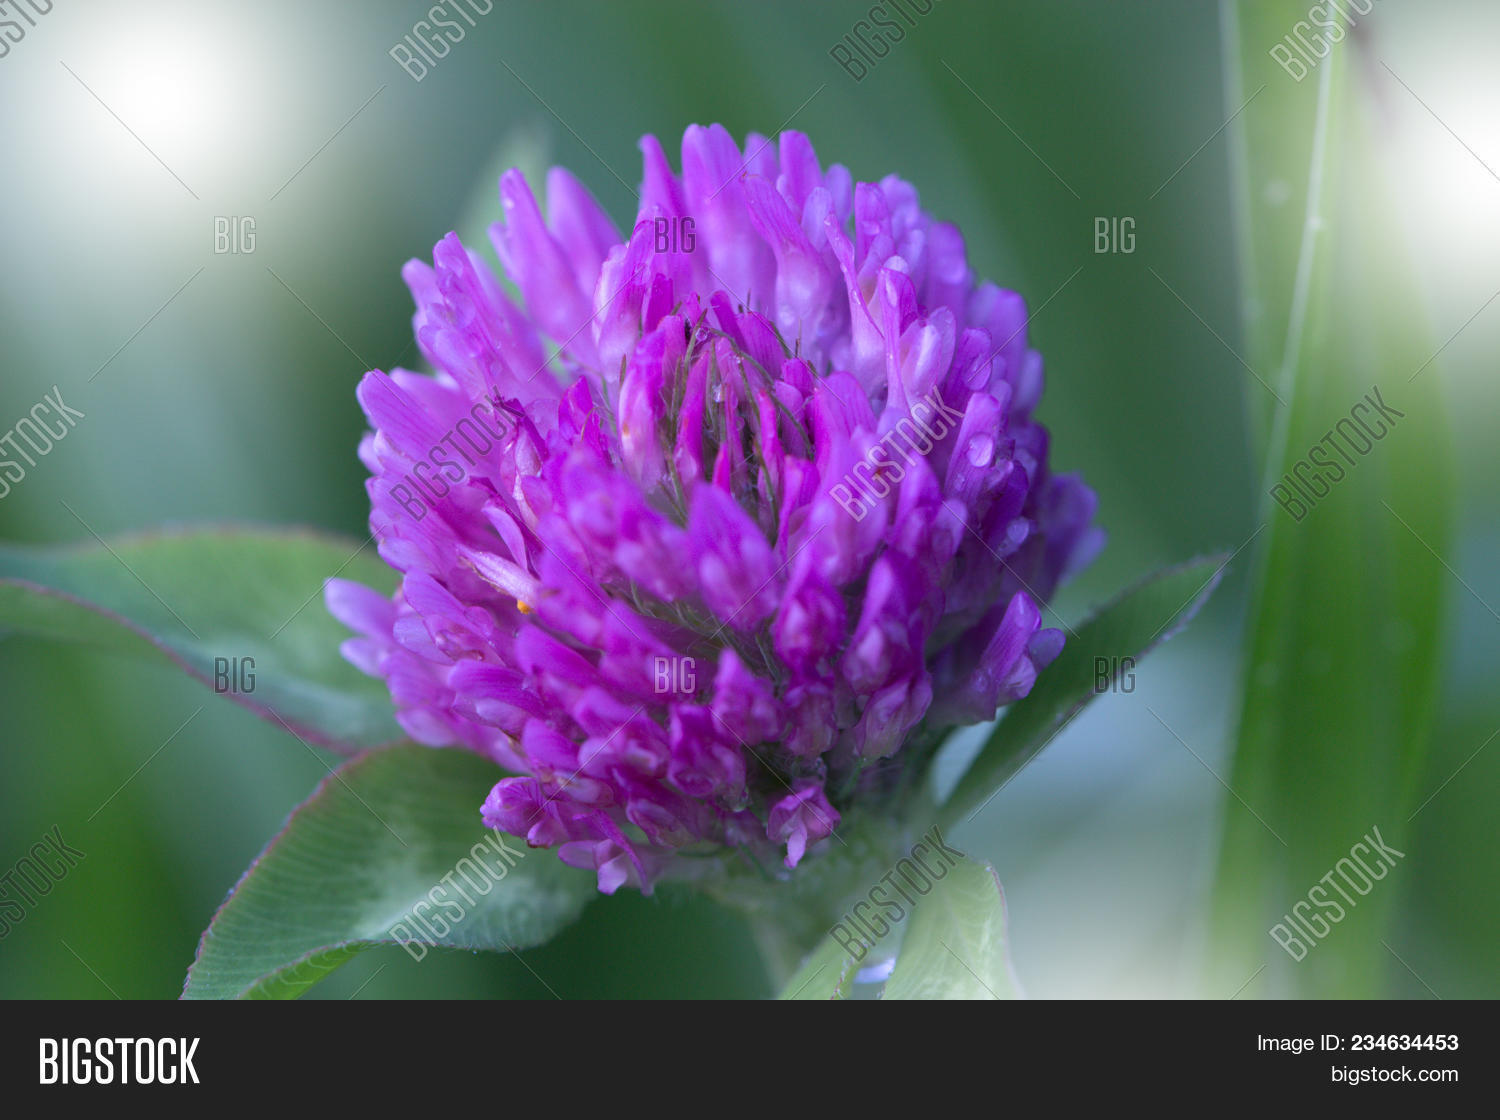 Purple Violet Spring Image Photo Free Trial Bigstock